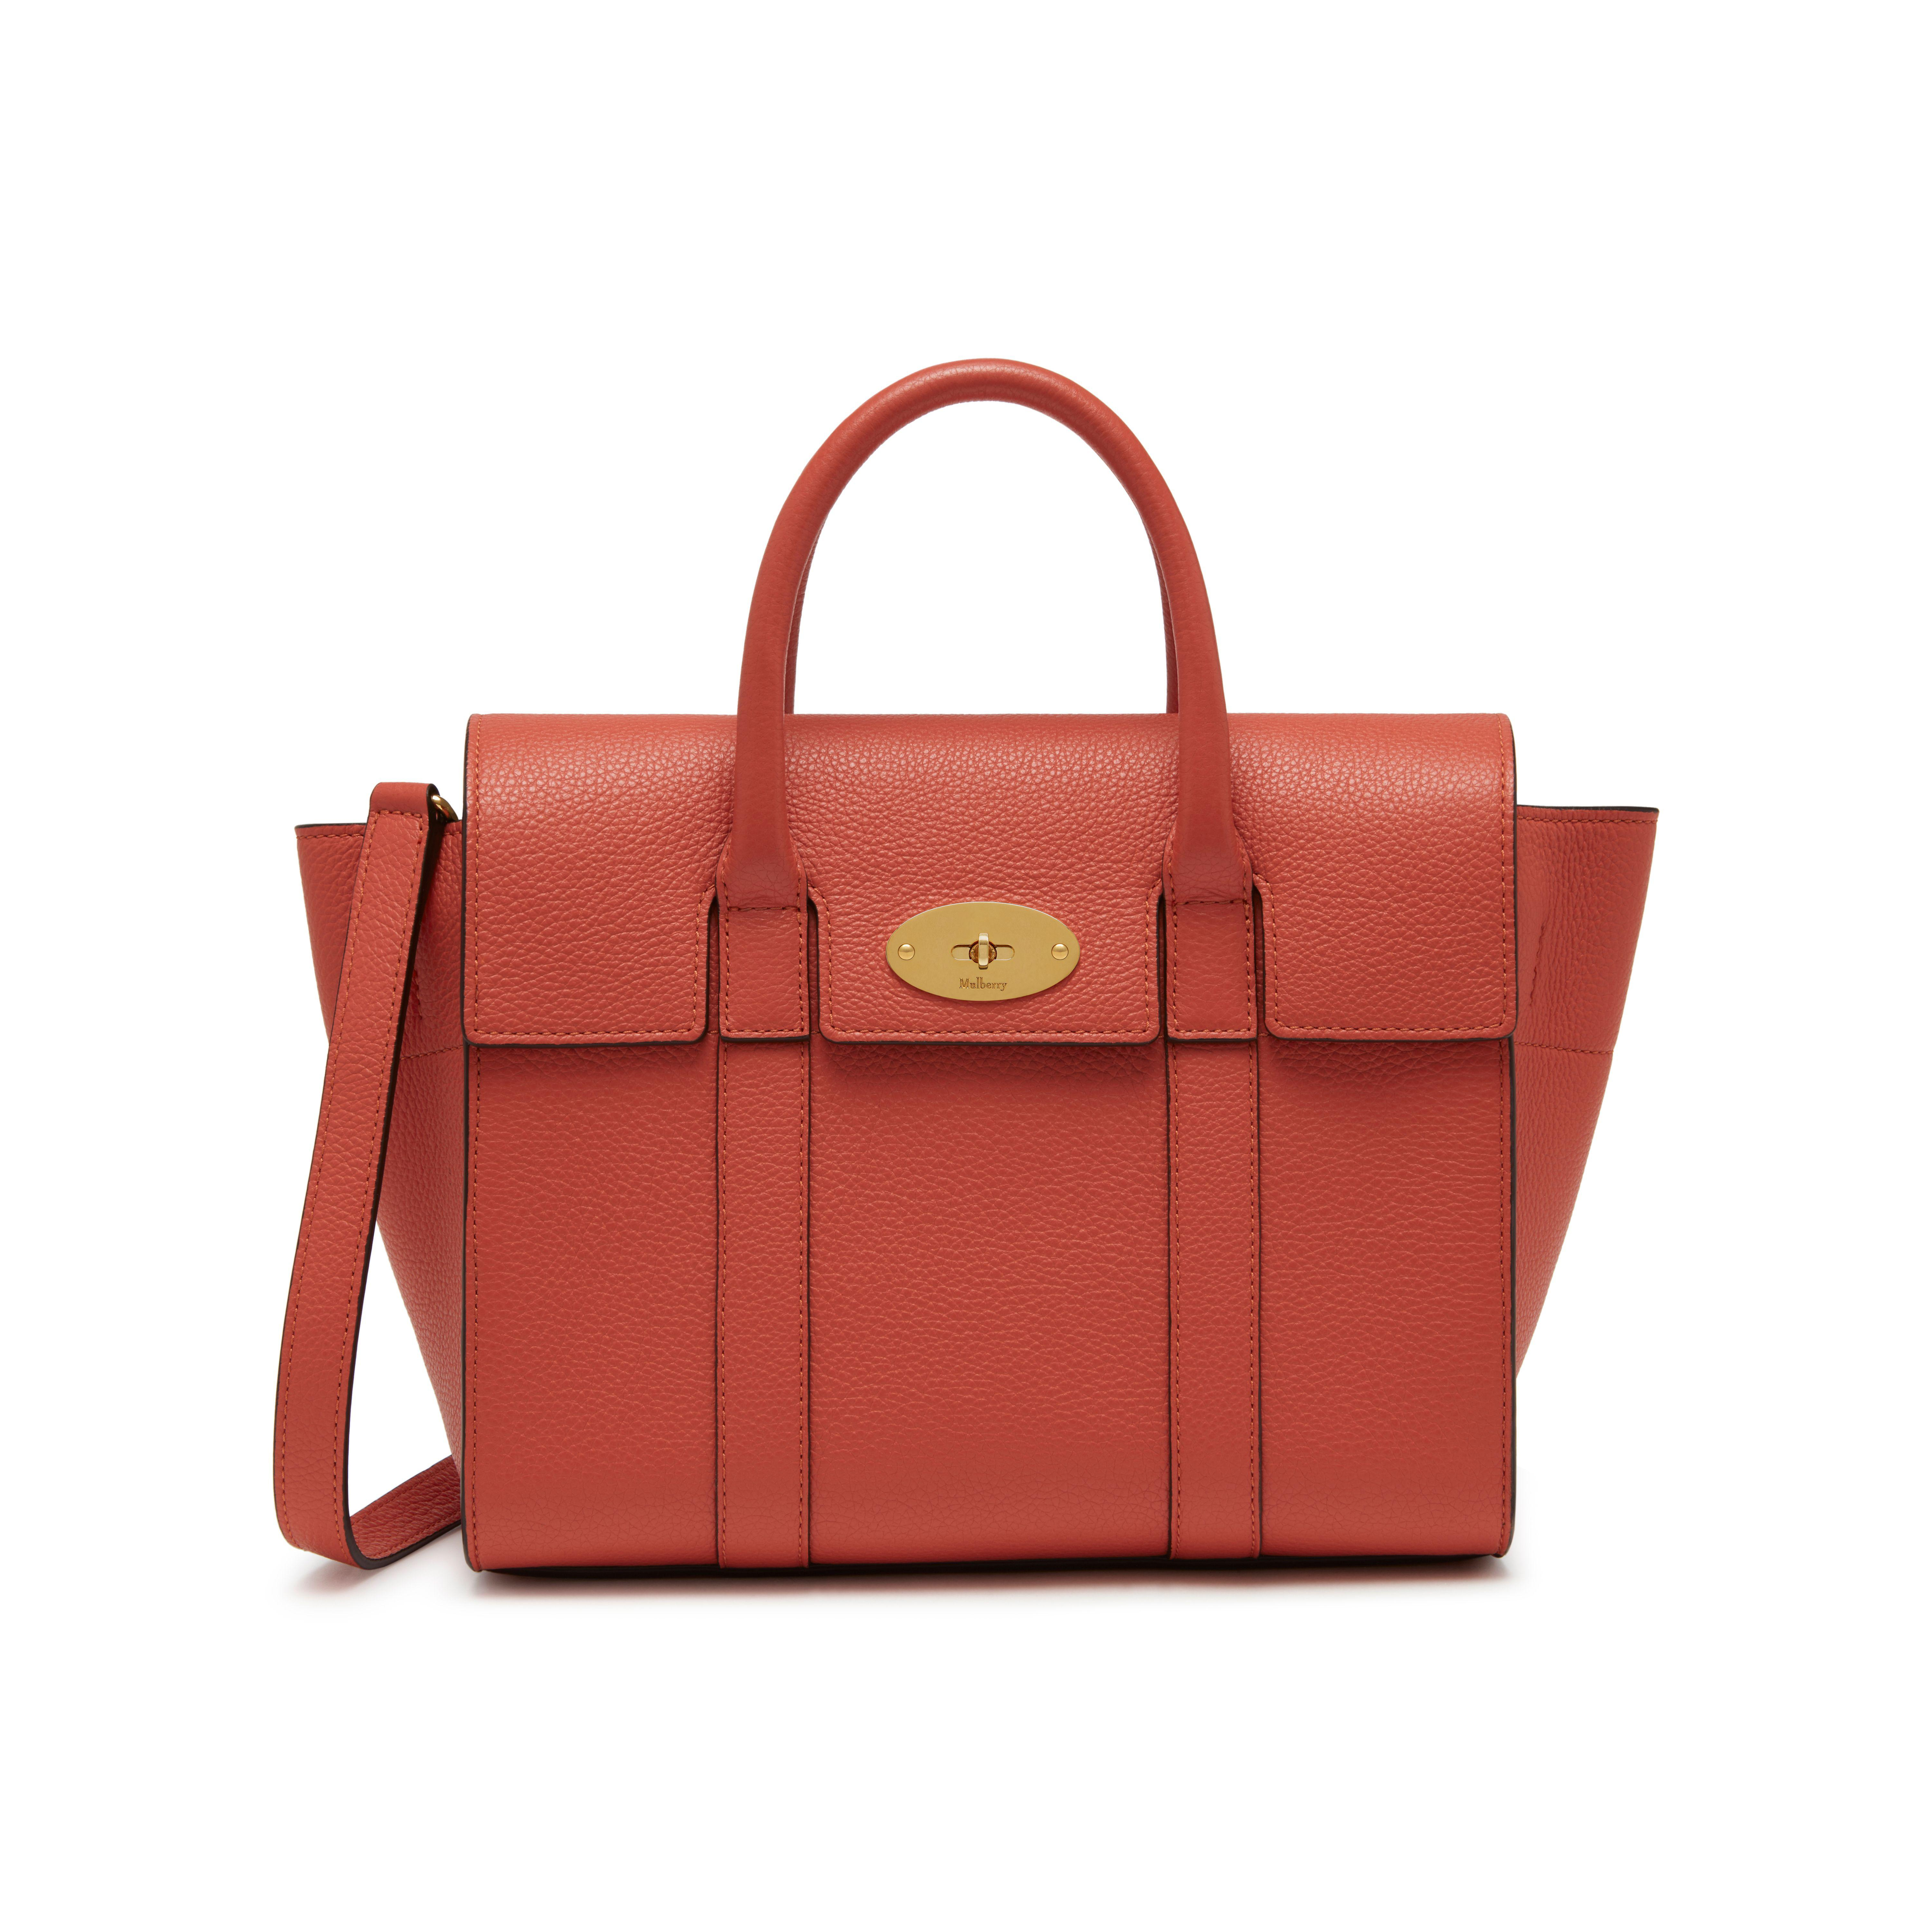 c869a53b6452 ... usa mulberry red small bayswater lyst. view fullscreen 4320c ddc1e